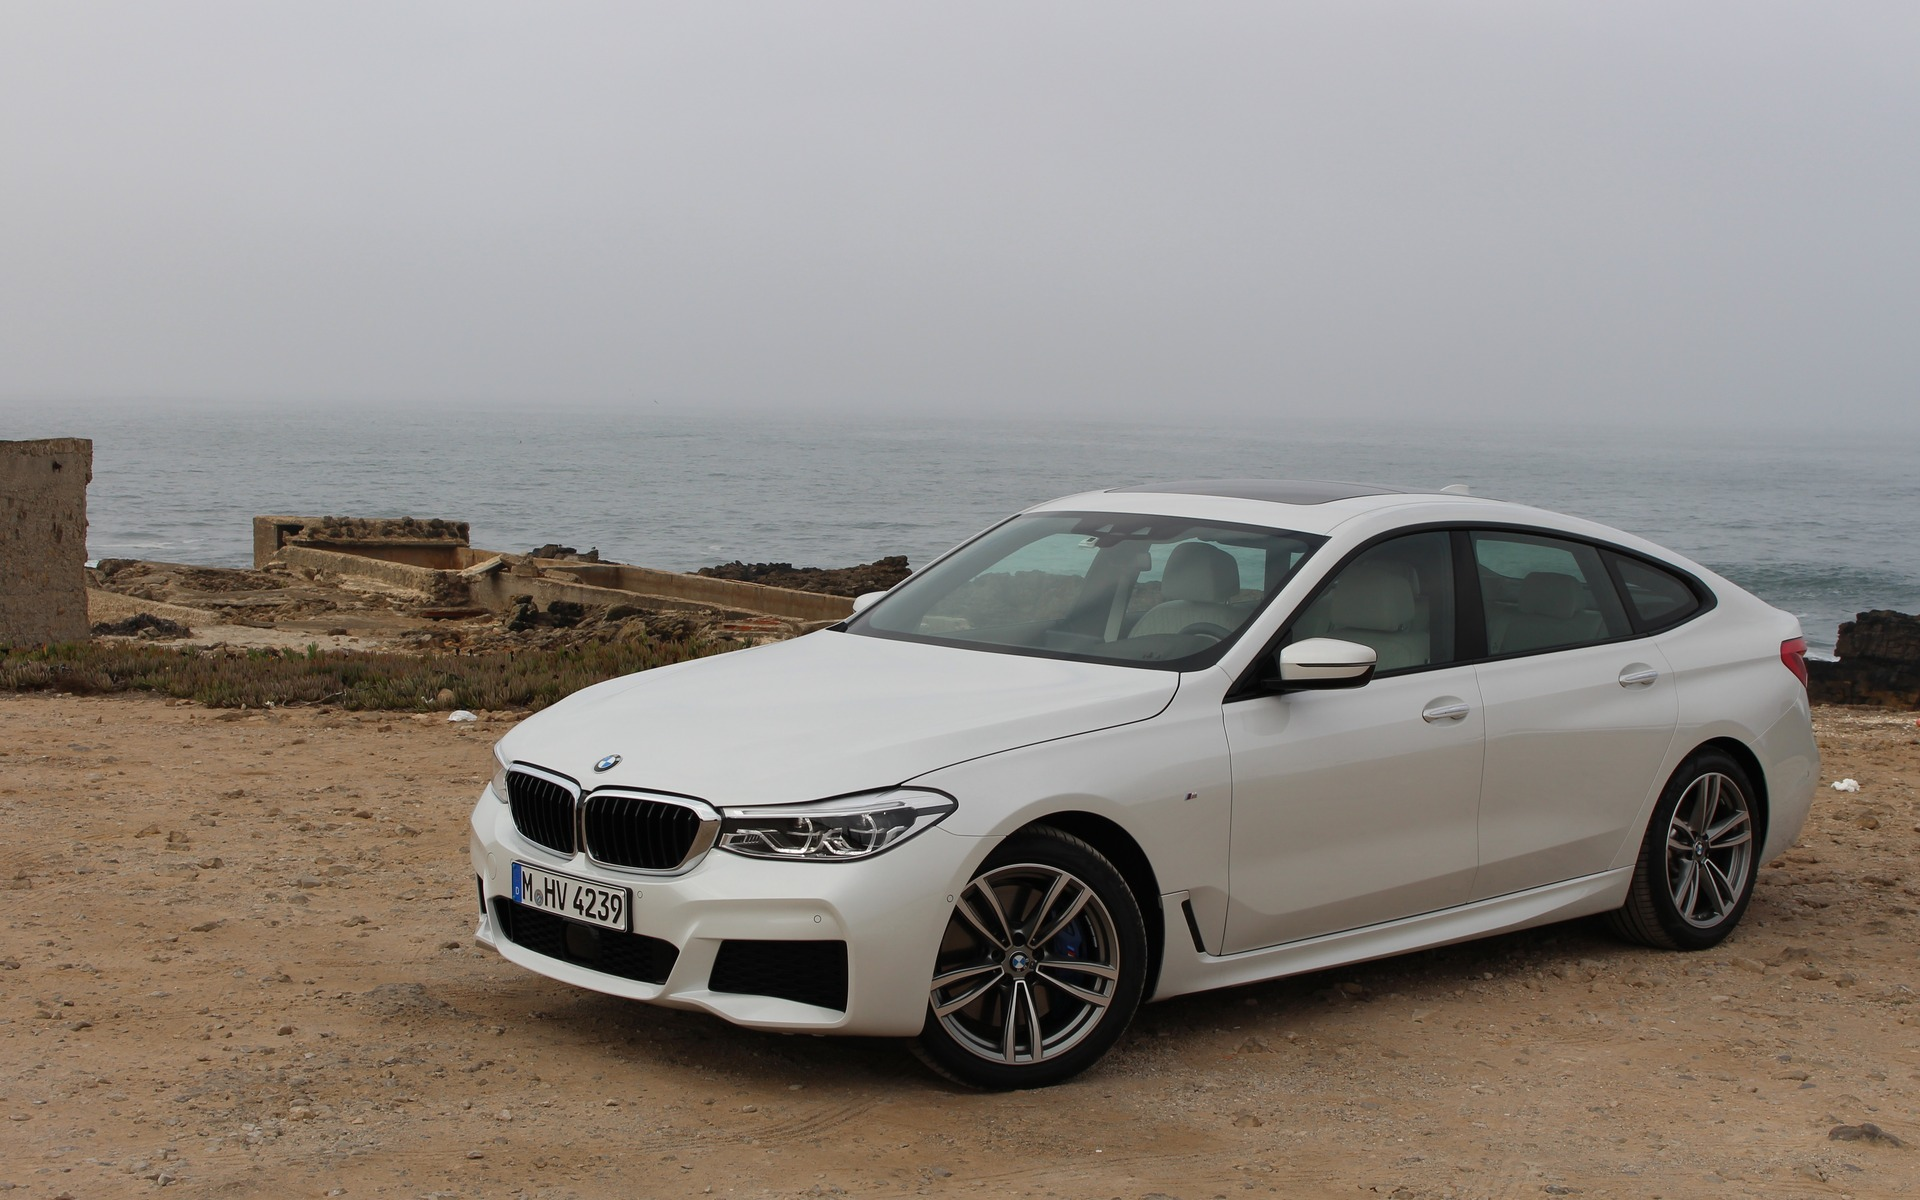 2018 Bmw 640i Xdrive Gran Turismo The New Face Of The 6